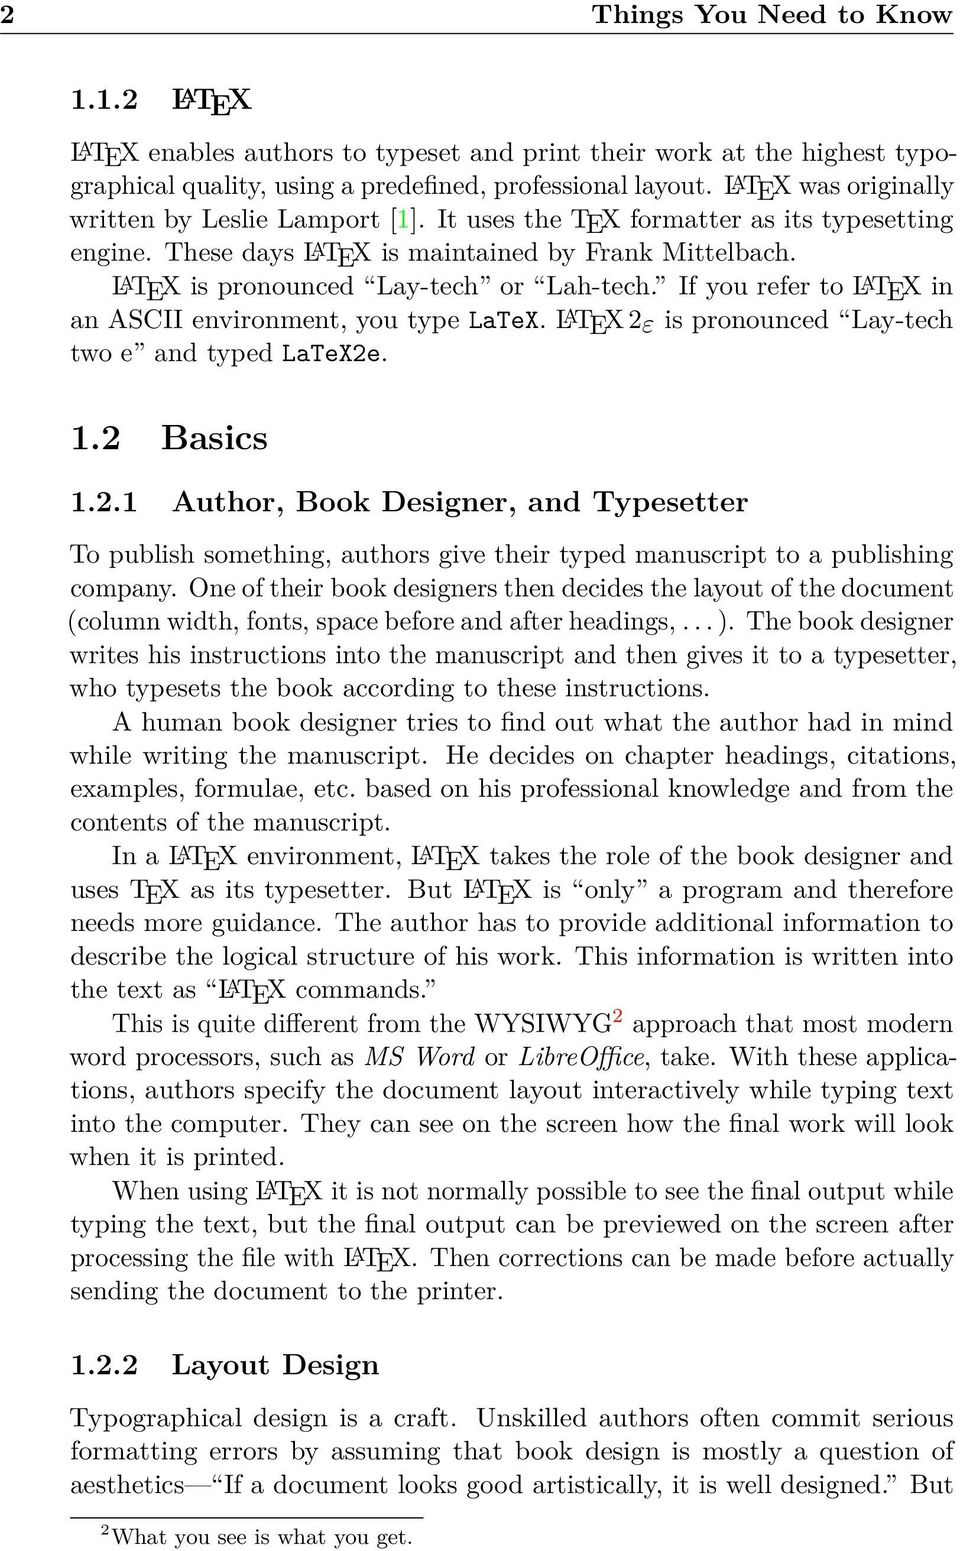 L A TEX is pronounced Lay-tech or Lah-tech. If you refer to L A TEX in an ASCII environment, you type LaTeX. L A TEX 2ε